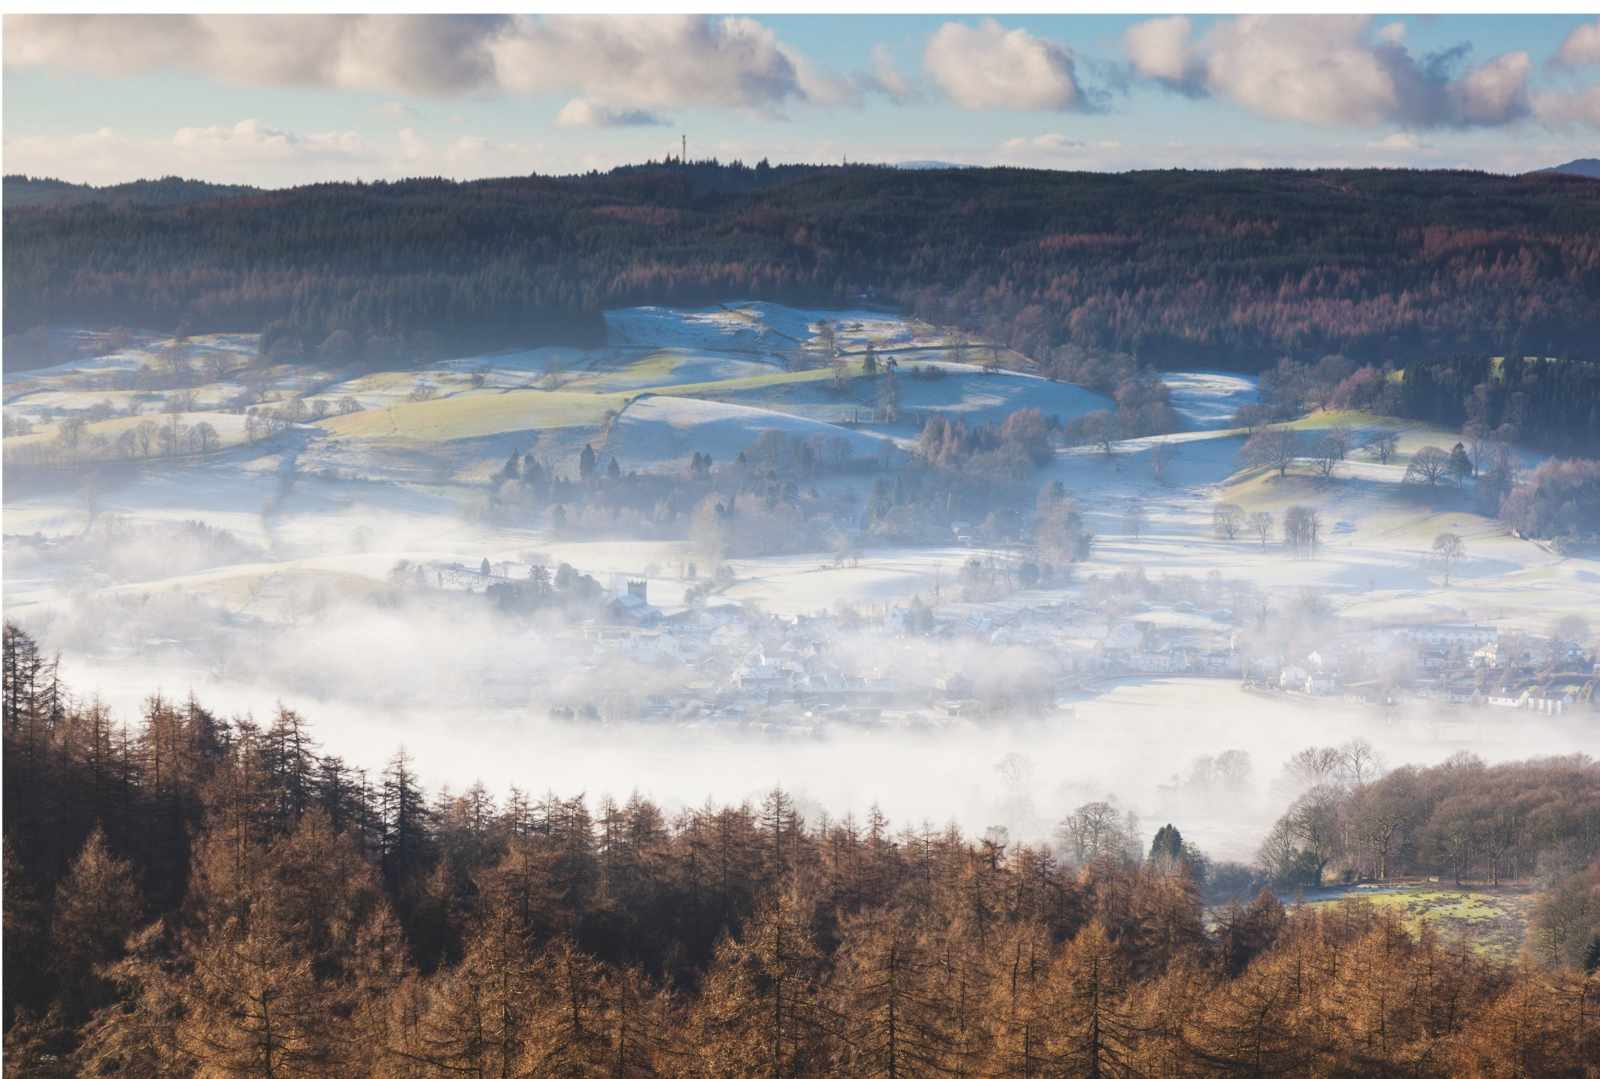 Hawkshead-on-a-misty-winters-morning-by-Simon-Whaley-2811999